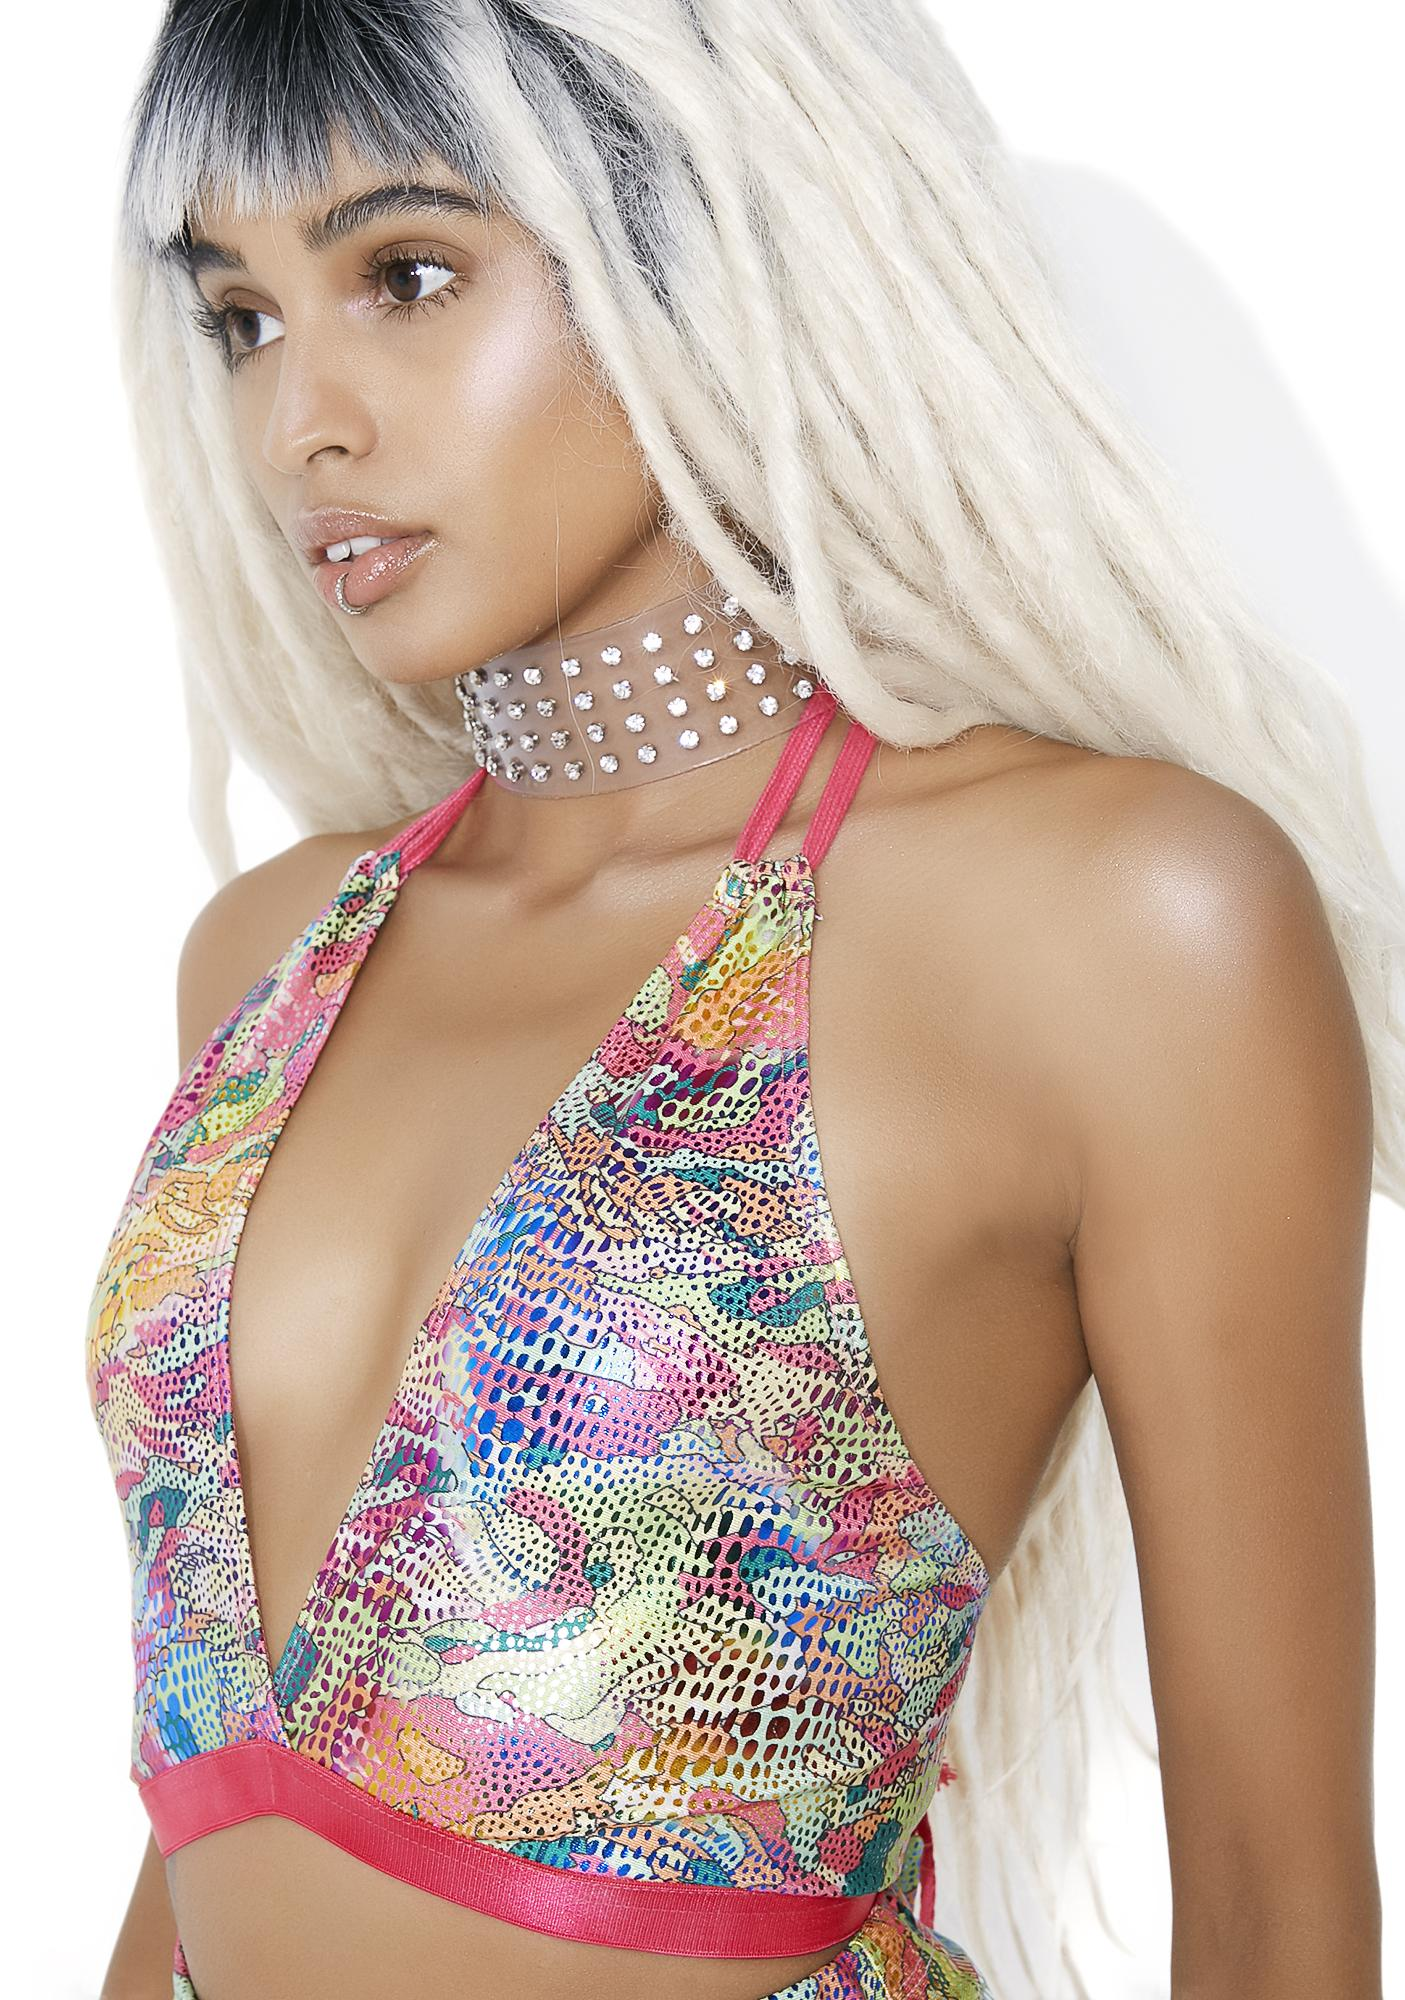 Club Exx Acid Oontz Lace-Up Halter Top